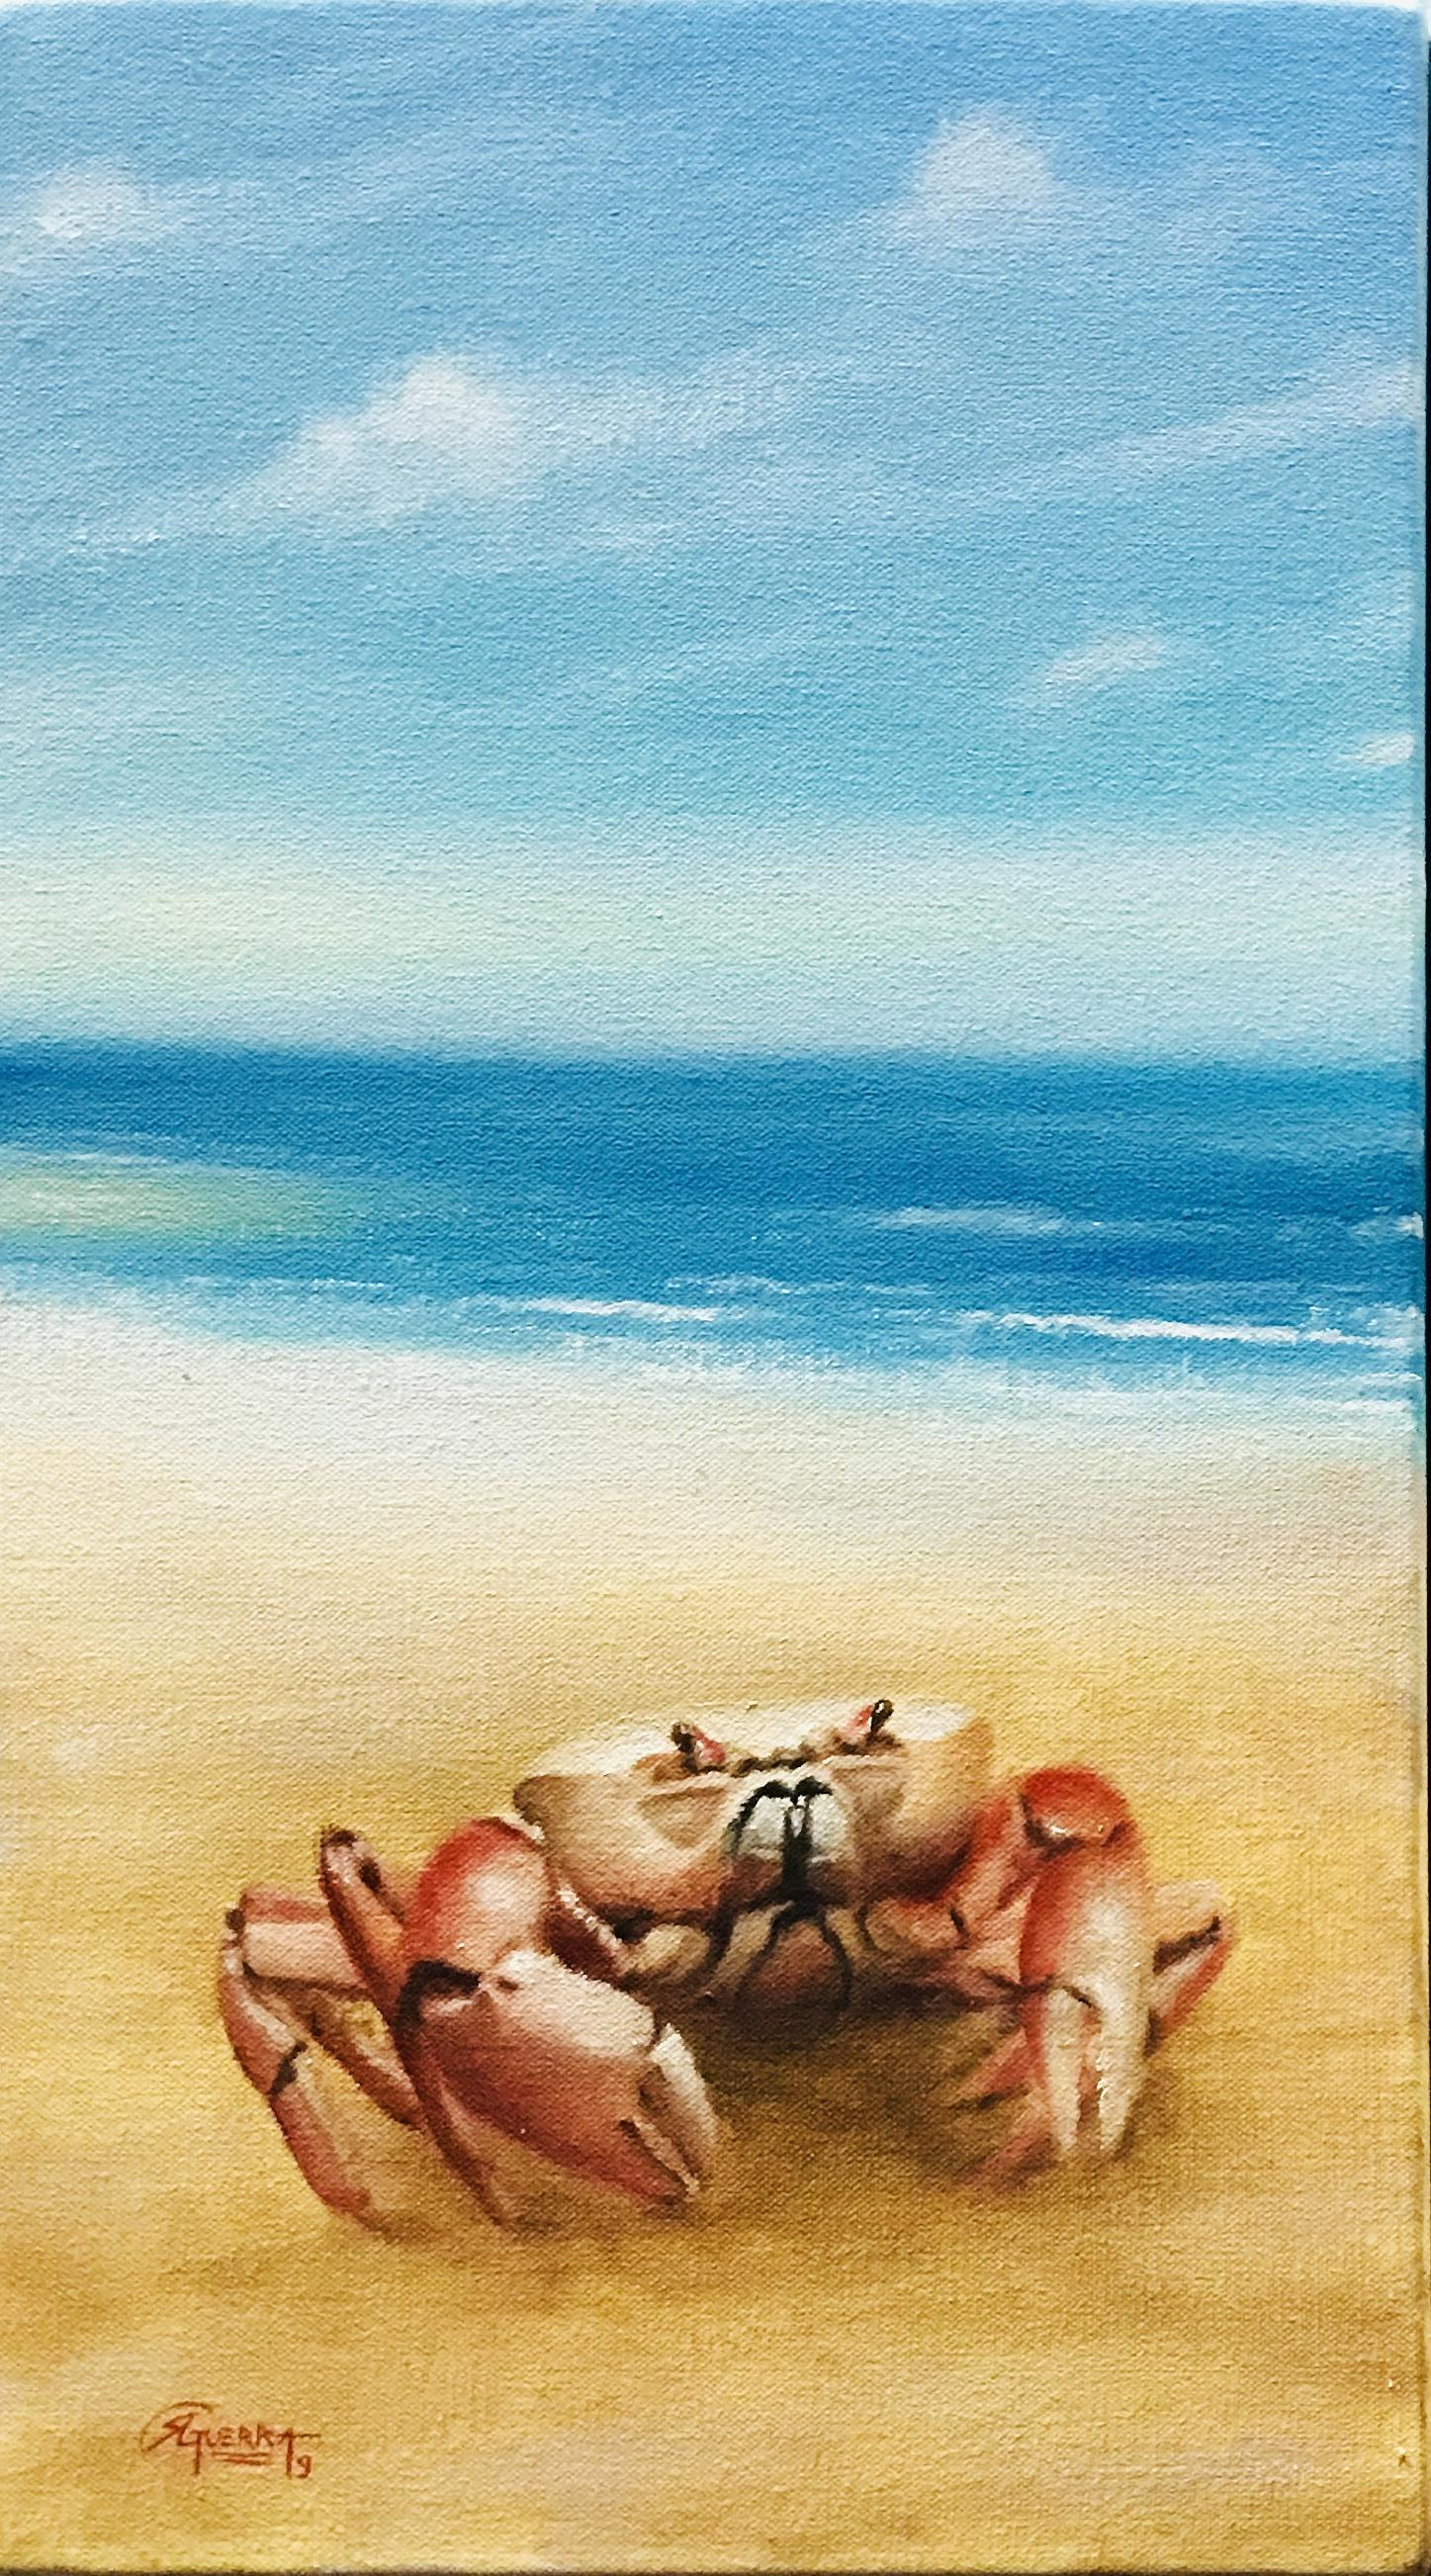 Beach Landscape with Crab, Rafael Guerra Pintura